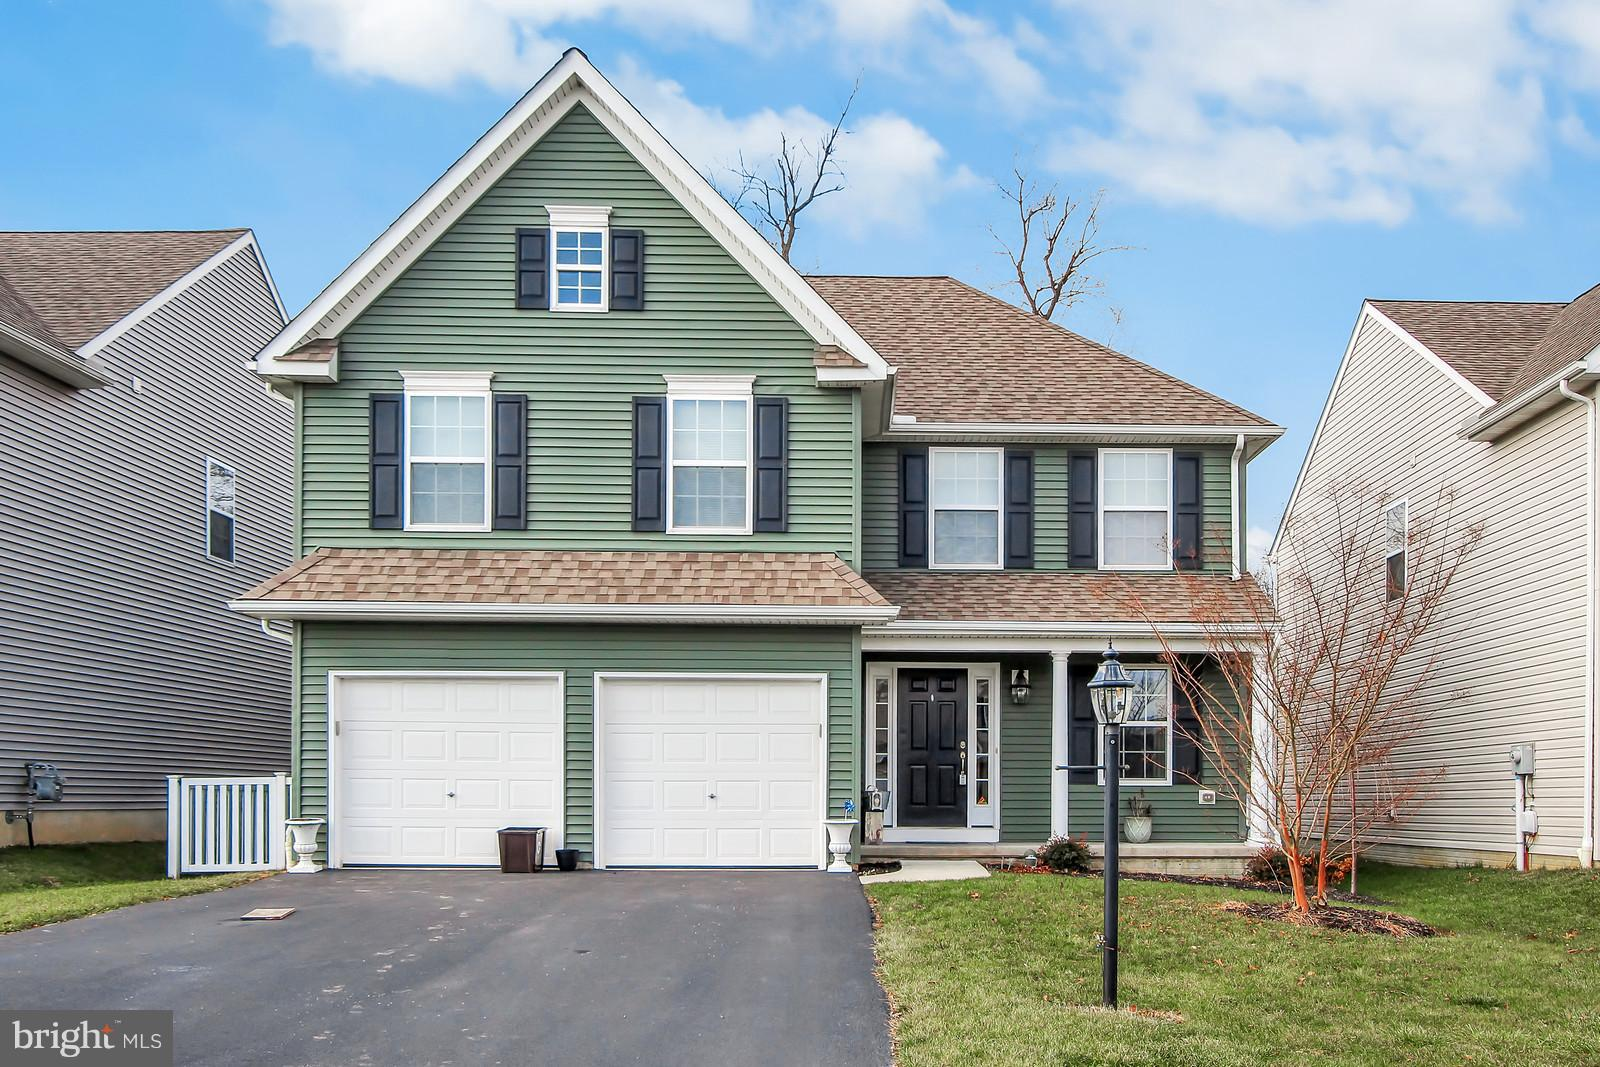 540 ROSEWATER DRIVE, RED LION, PA 17356